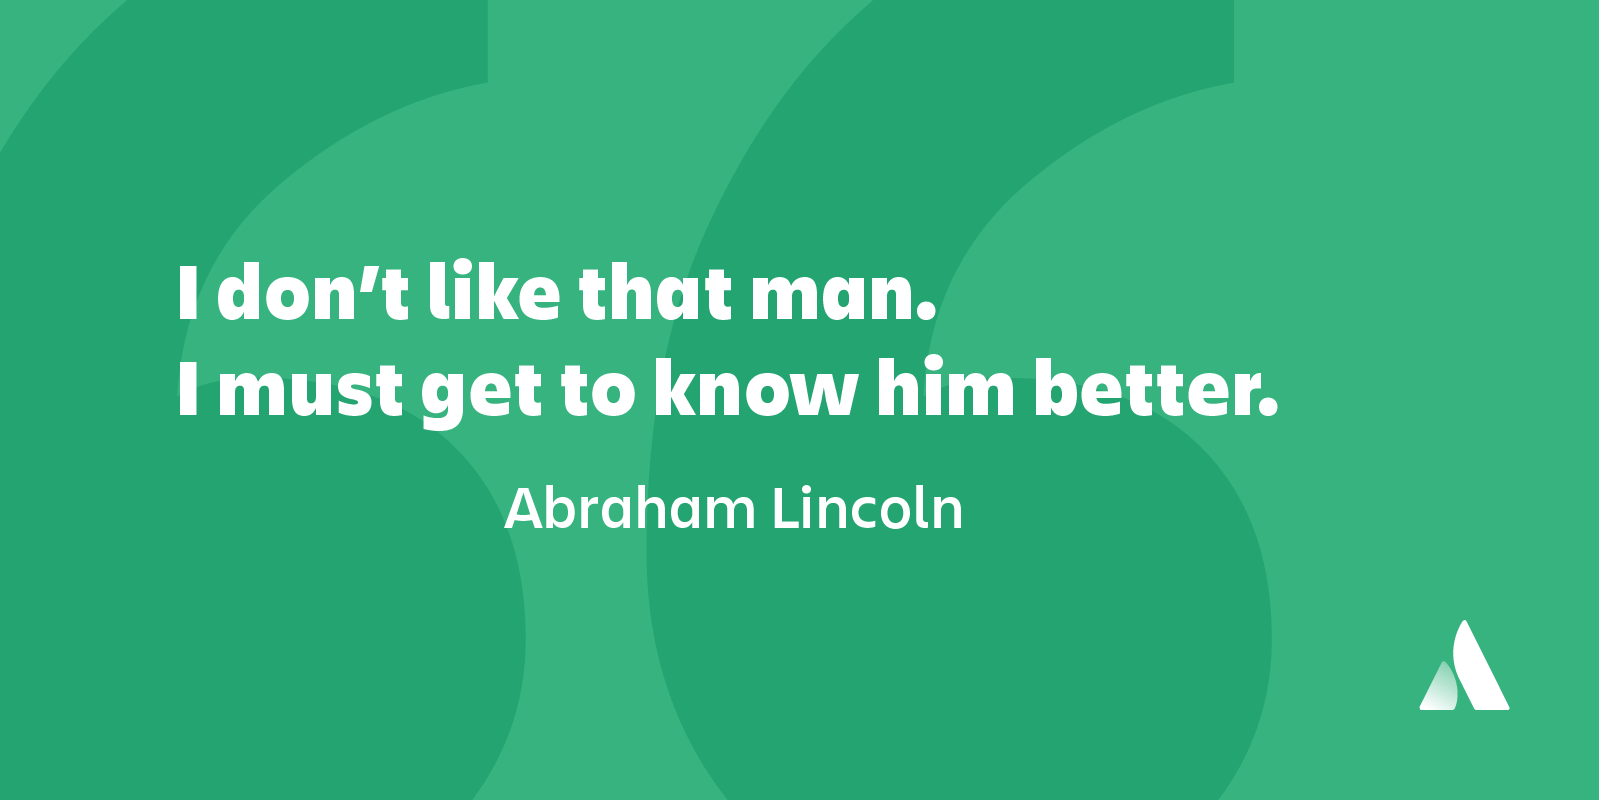 Atlassian quotes, Abraham Lincoln quotes